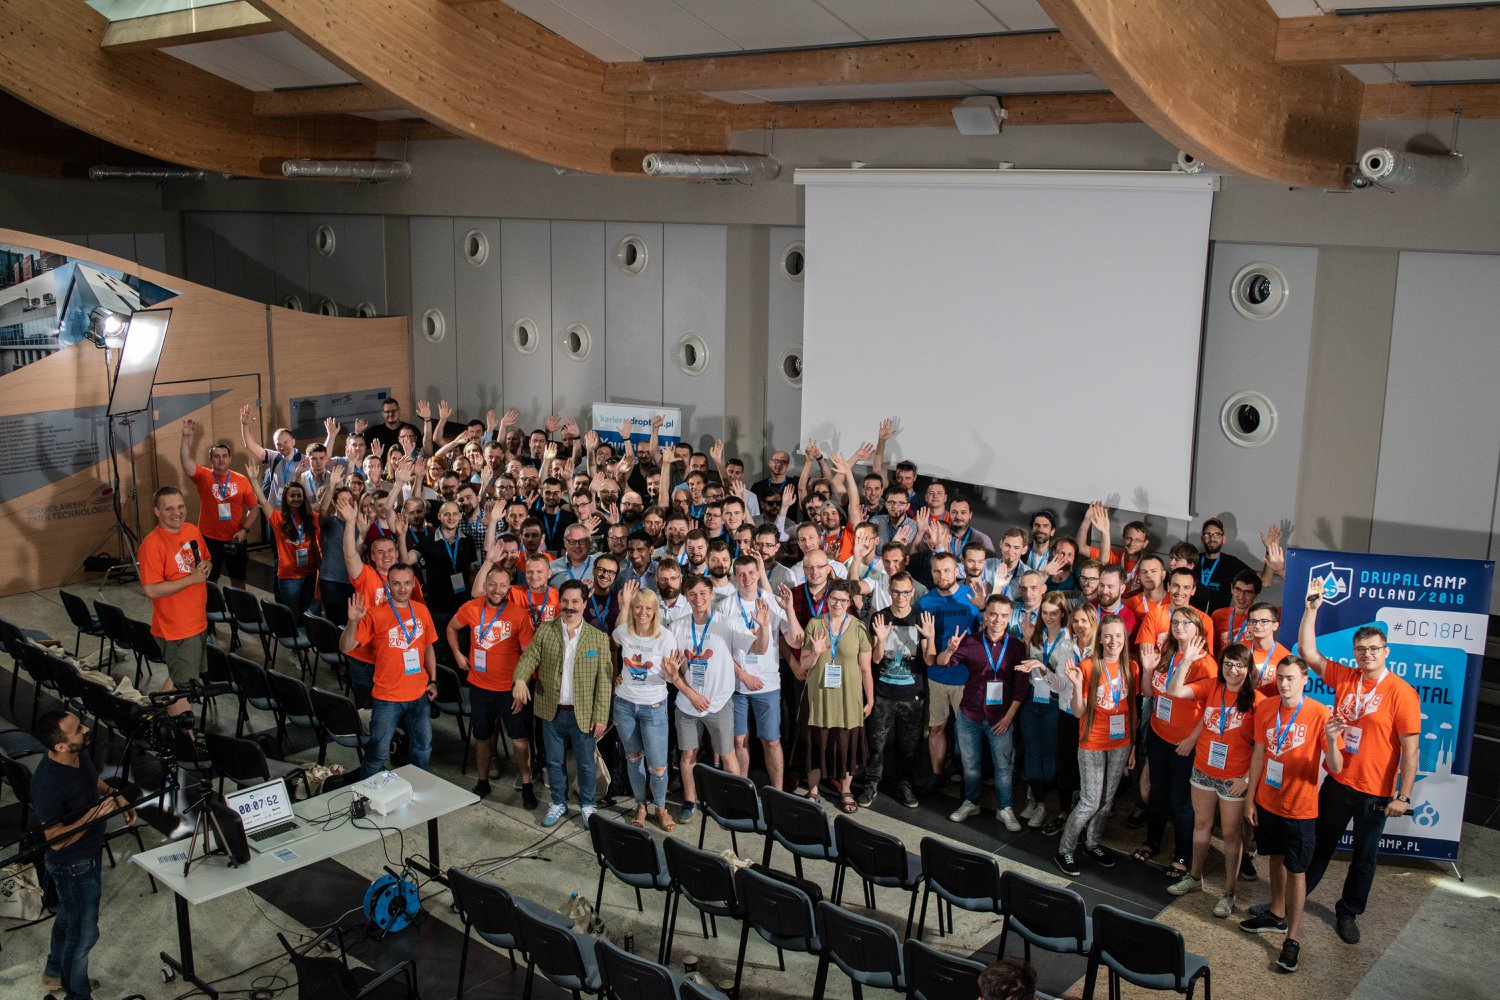 Participants of Drupal Camp Poland